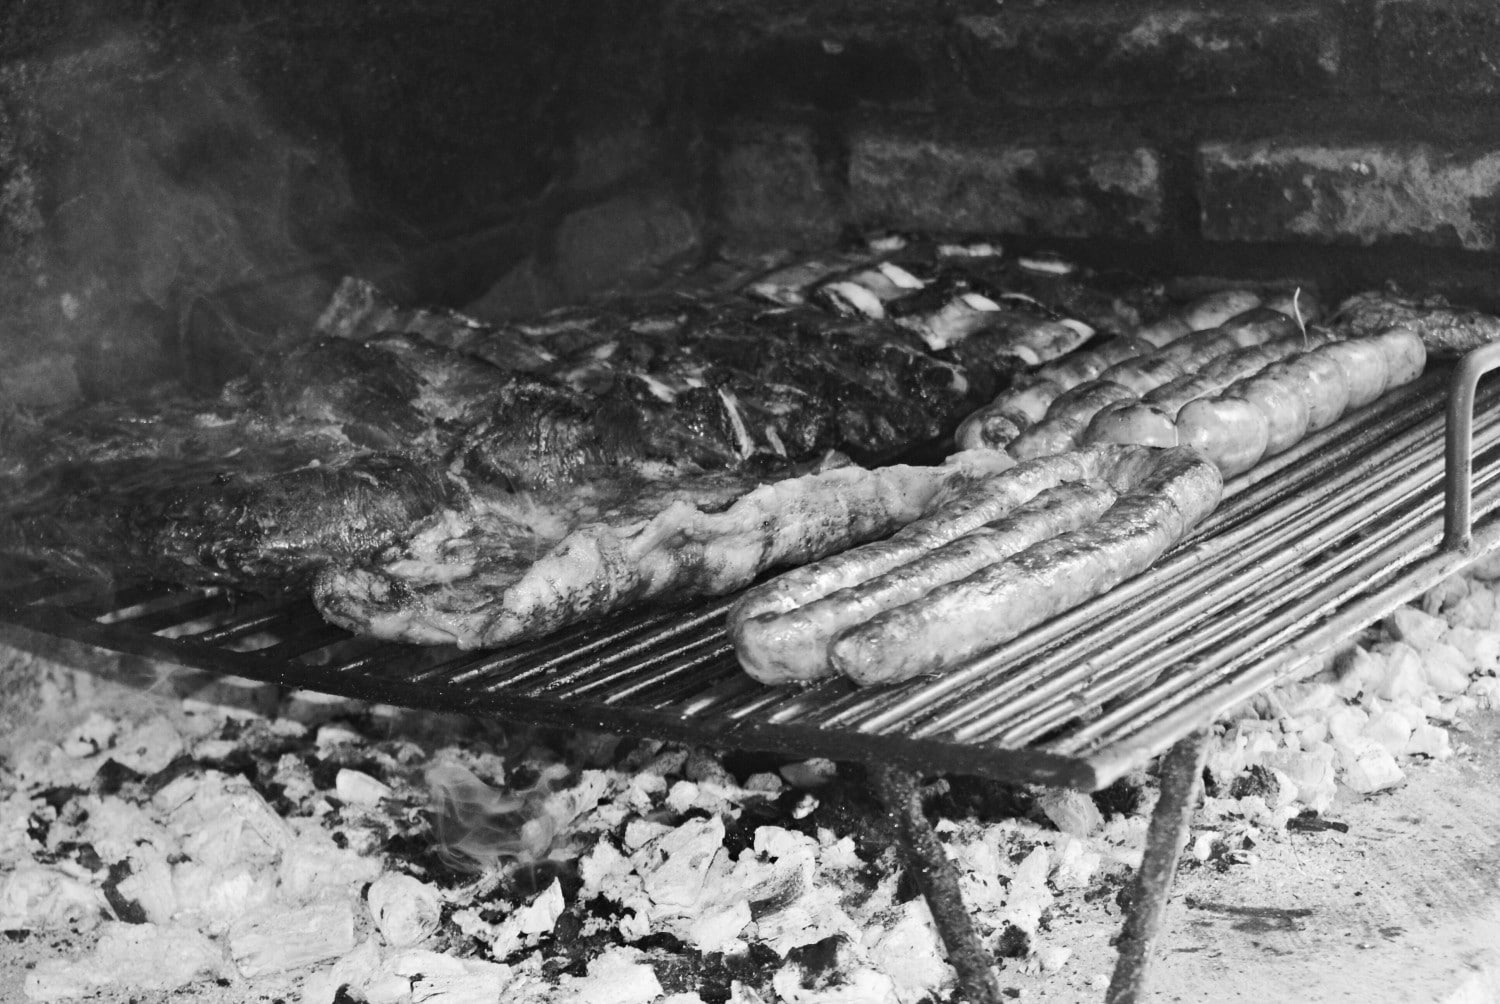 Argentinean Parilla - Awesome things to do in Argentina